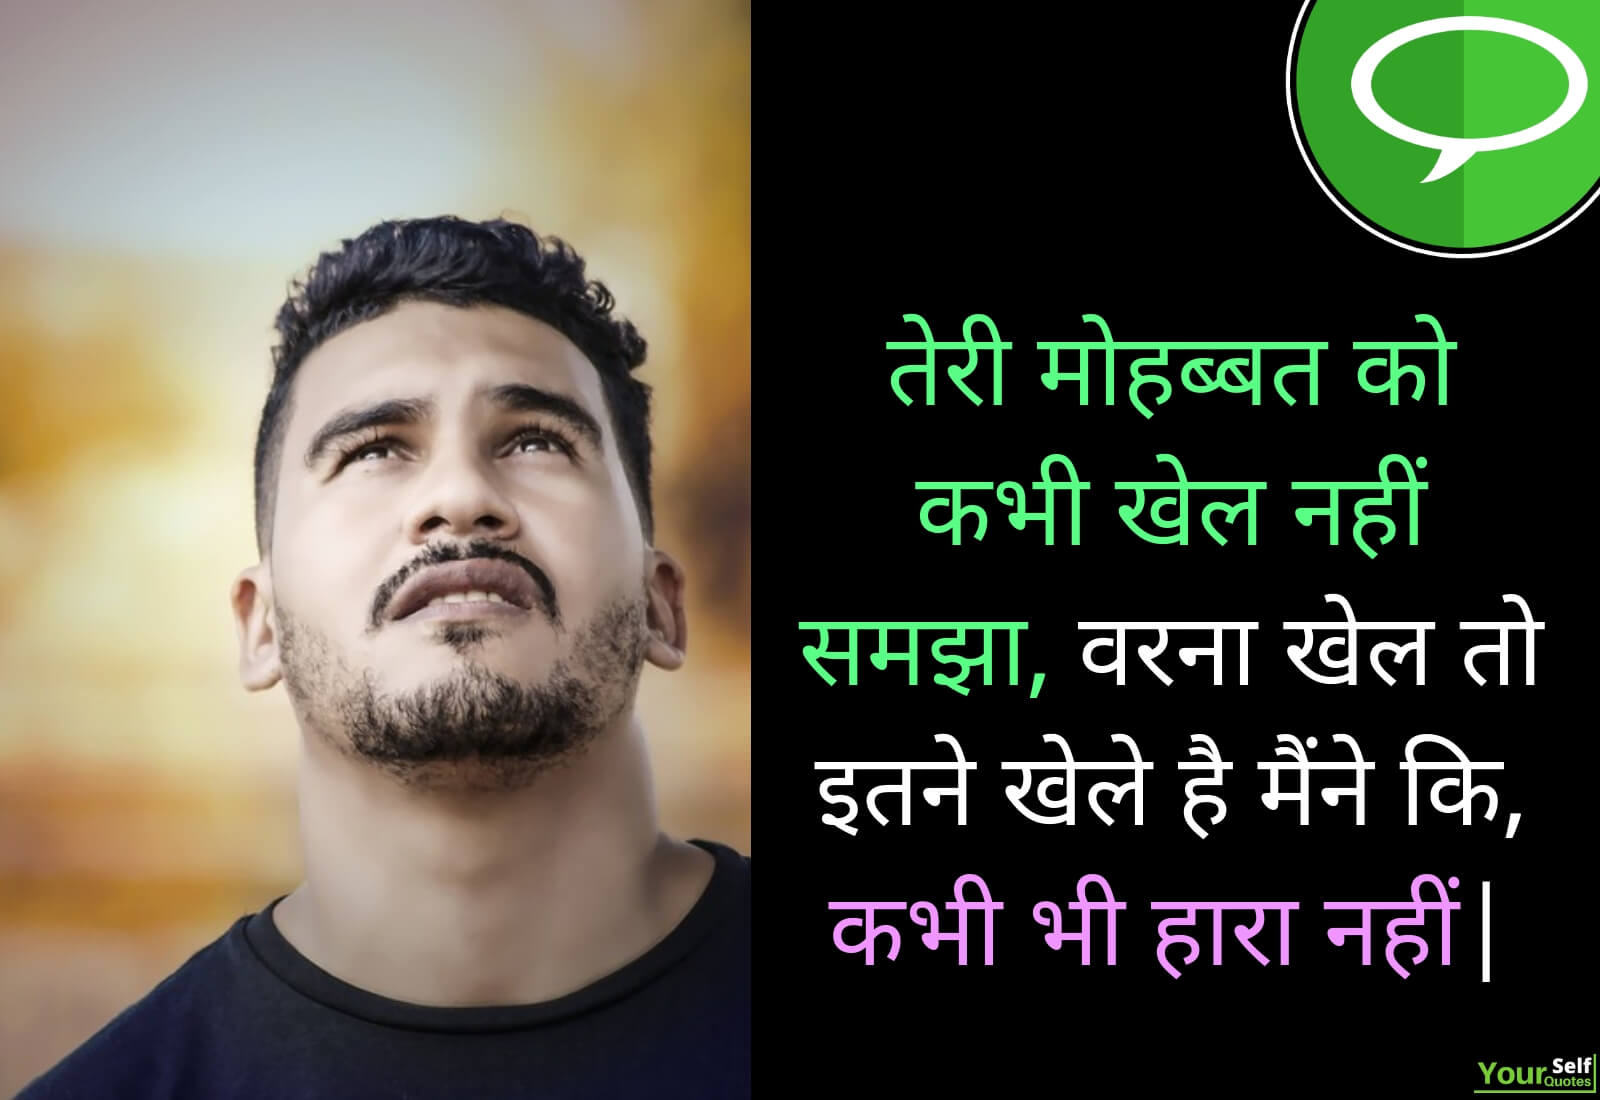 Dard Bhari Sad Images in Hindi